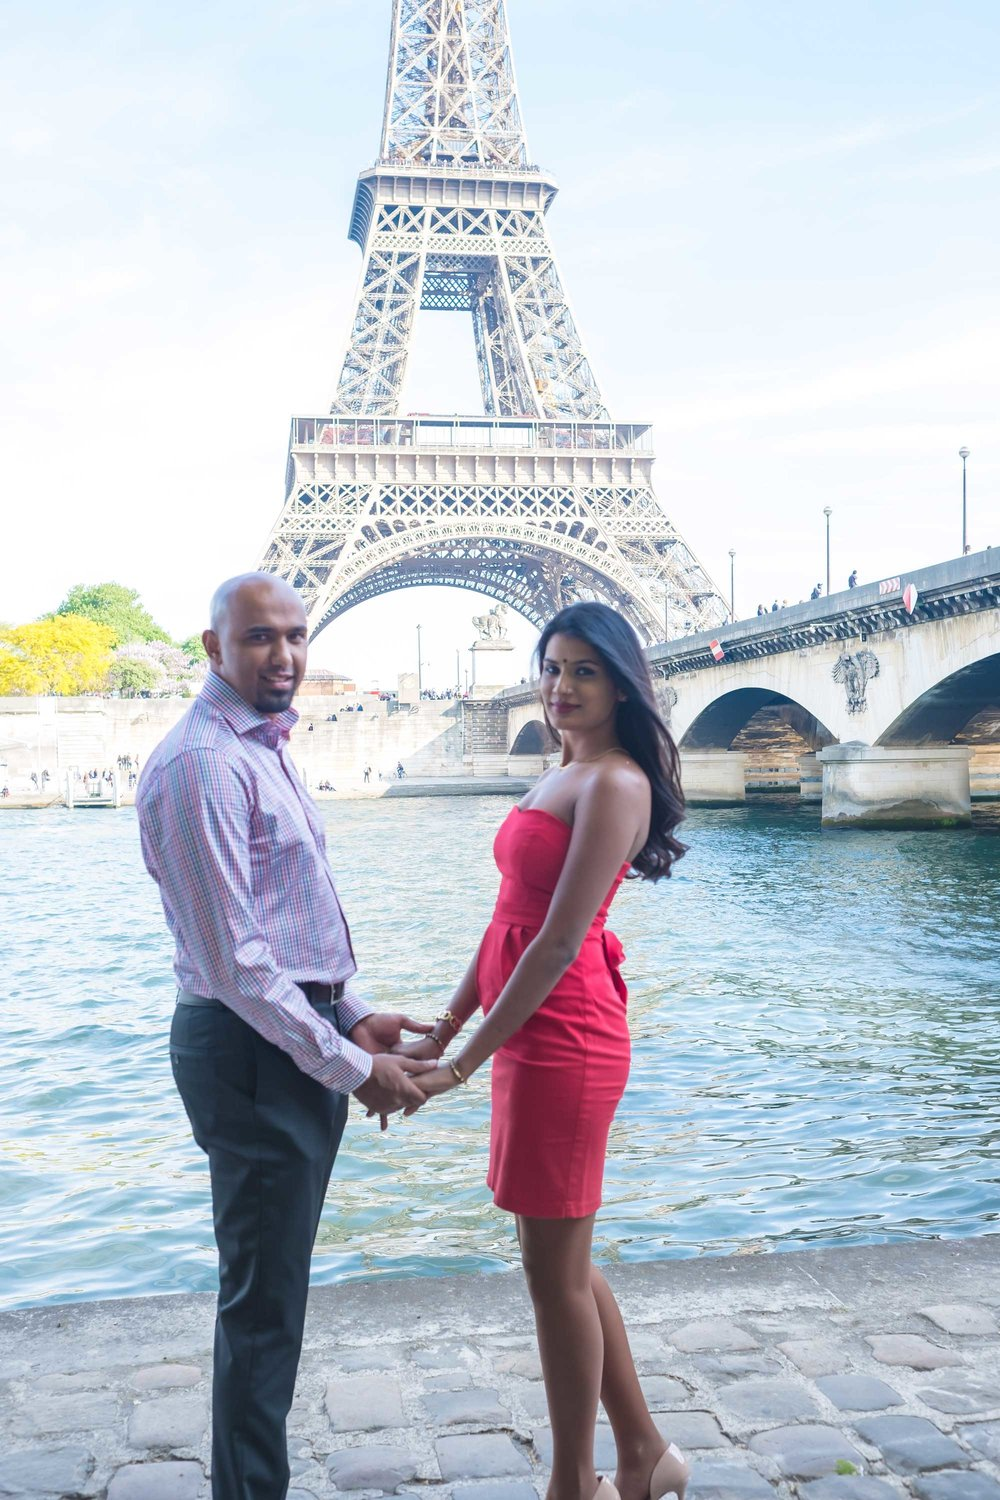 dirushka & yash - I was blown away by this stunning couple from South Africa. Their elegant refinement was evident in every frame. Not only that, they were warm and friendly and I enjoyed not only photographing them, but chatting about our life experiences and of course, Paris. How lucky am I to meet people like this?See more images here